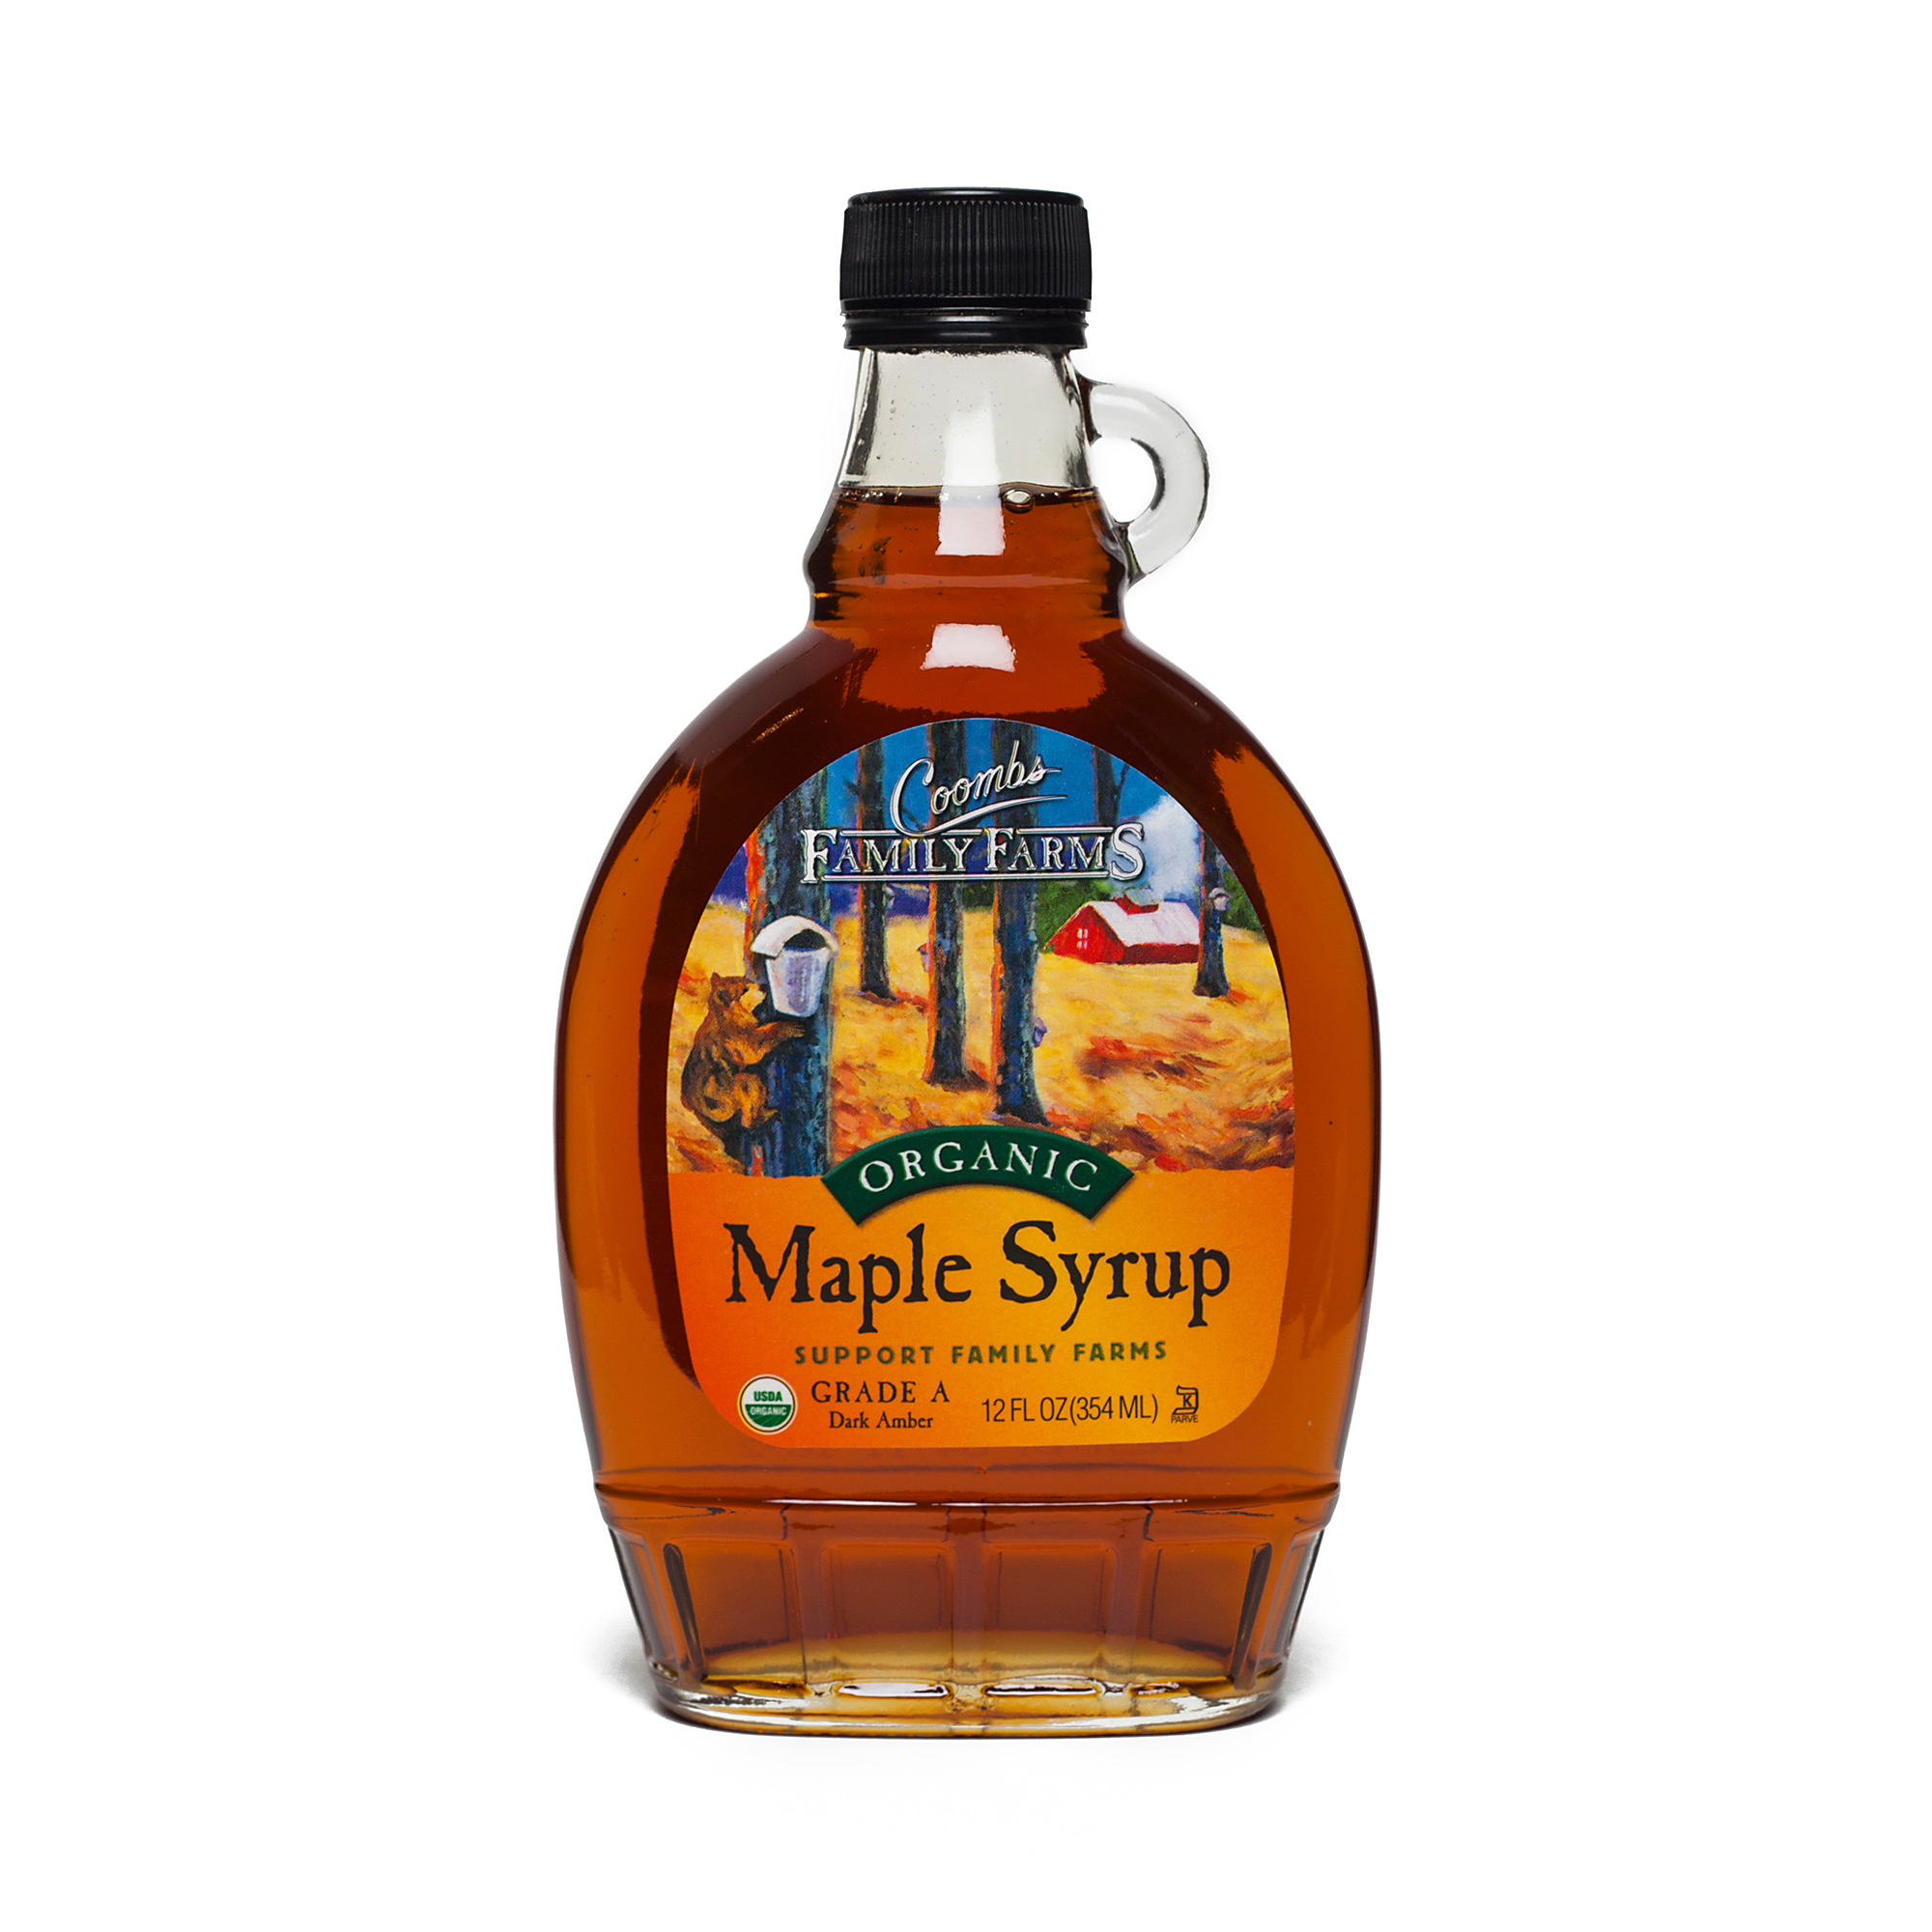 Coombs Organic Maple Syrup Grade A Dark Amber 12 oz bottle